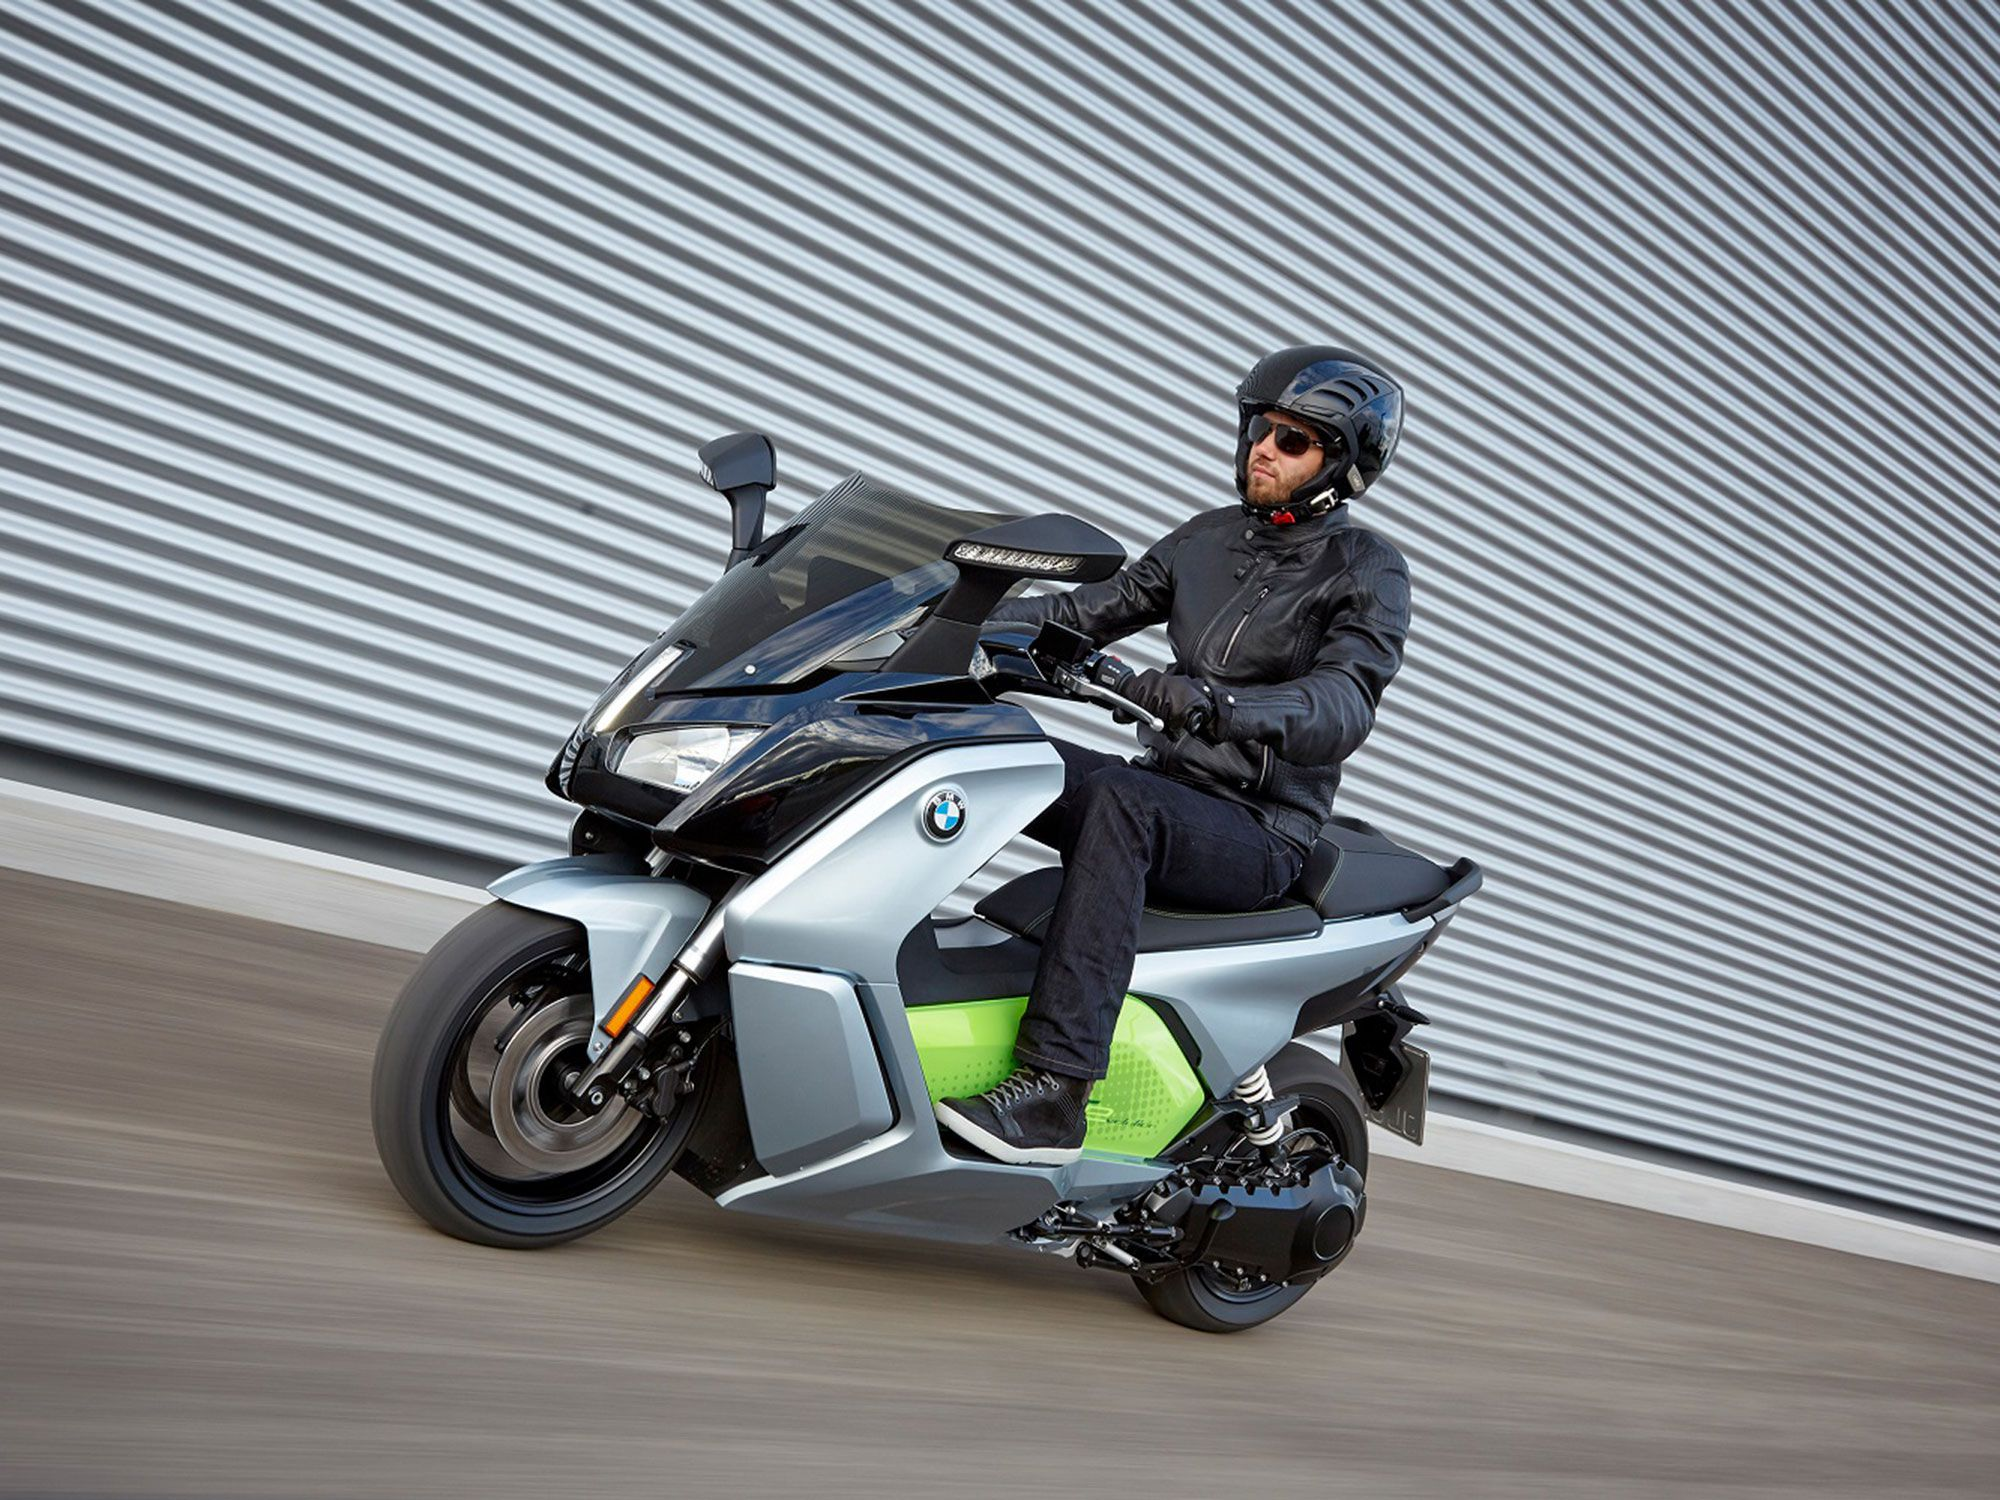 All signs point to the likelihood that BMW's current electric scooters are due for a revamp as well as an expansion of the series.